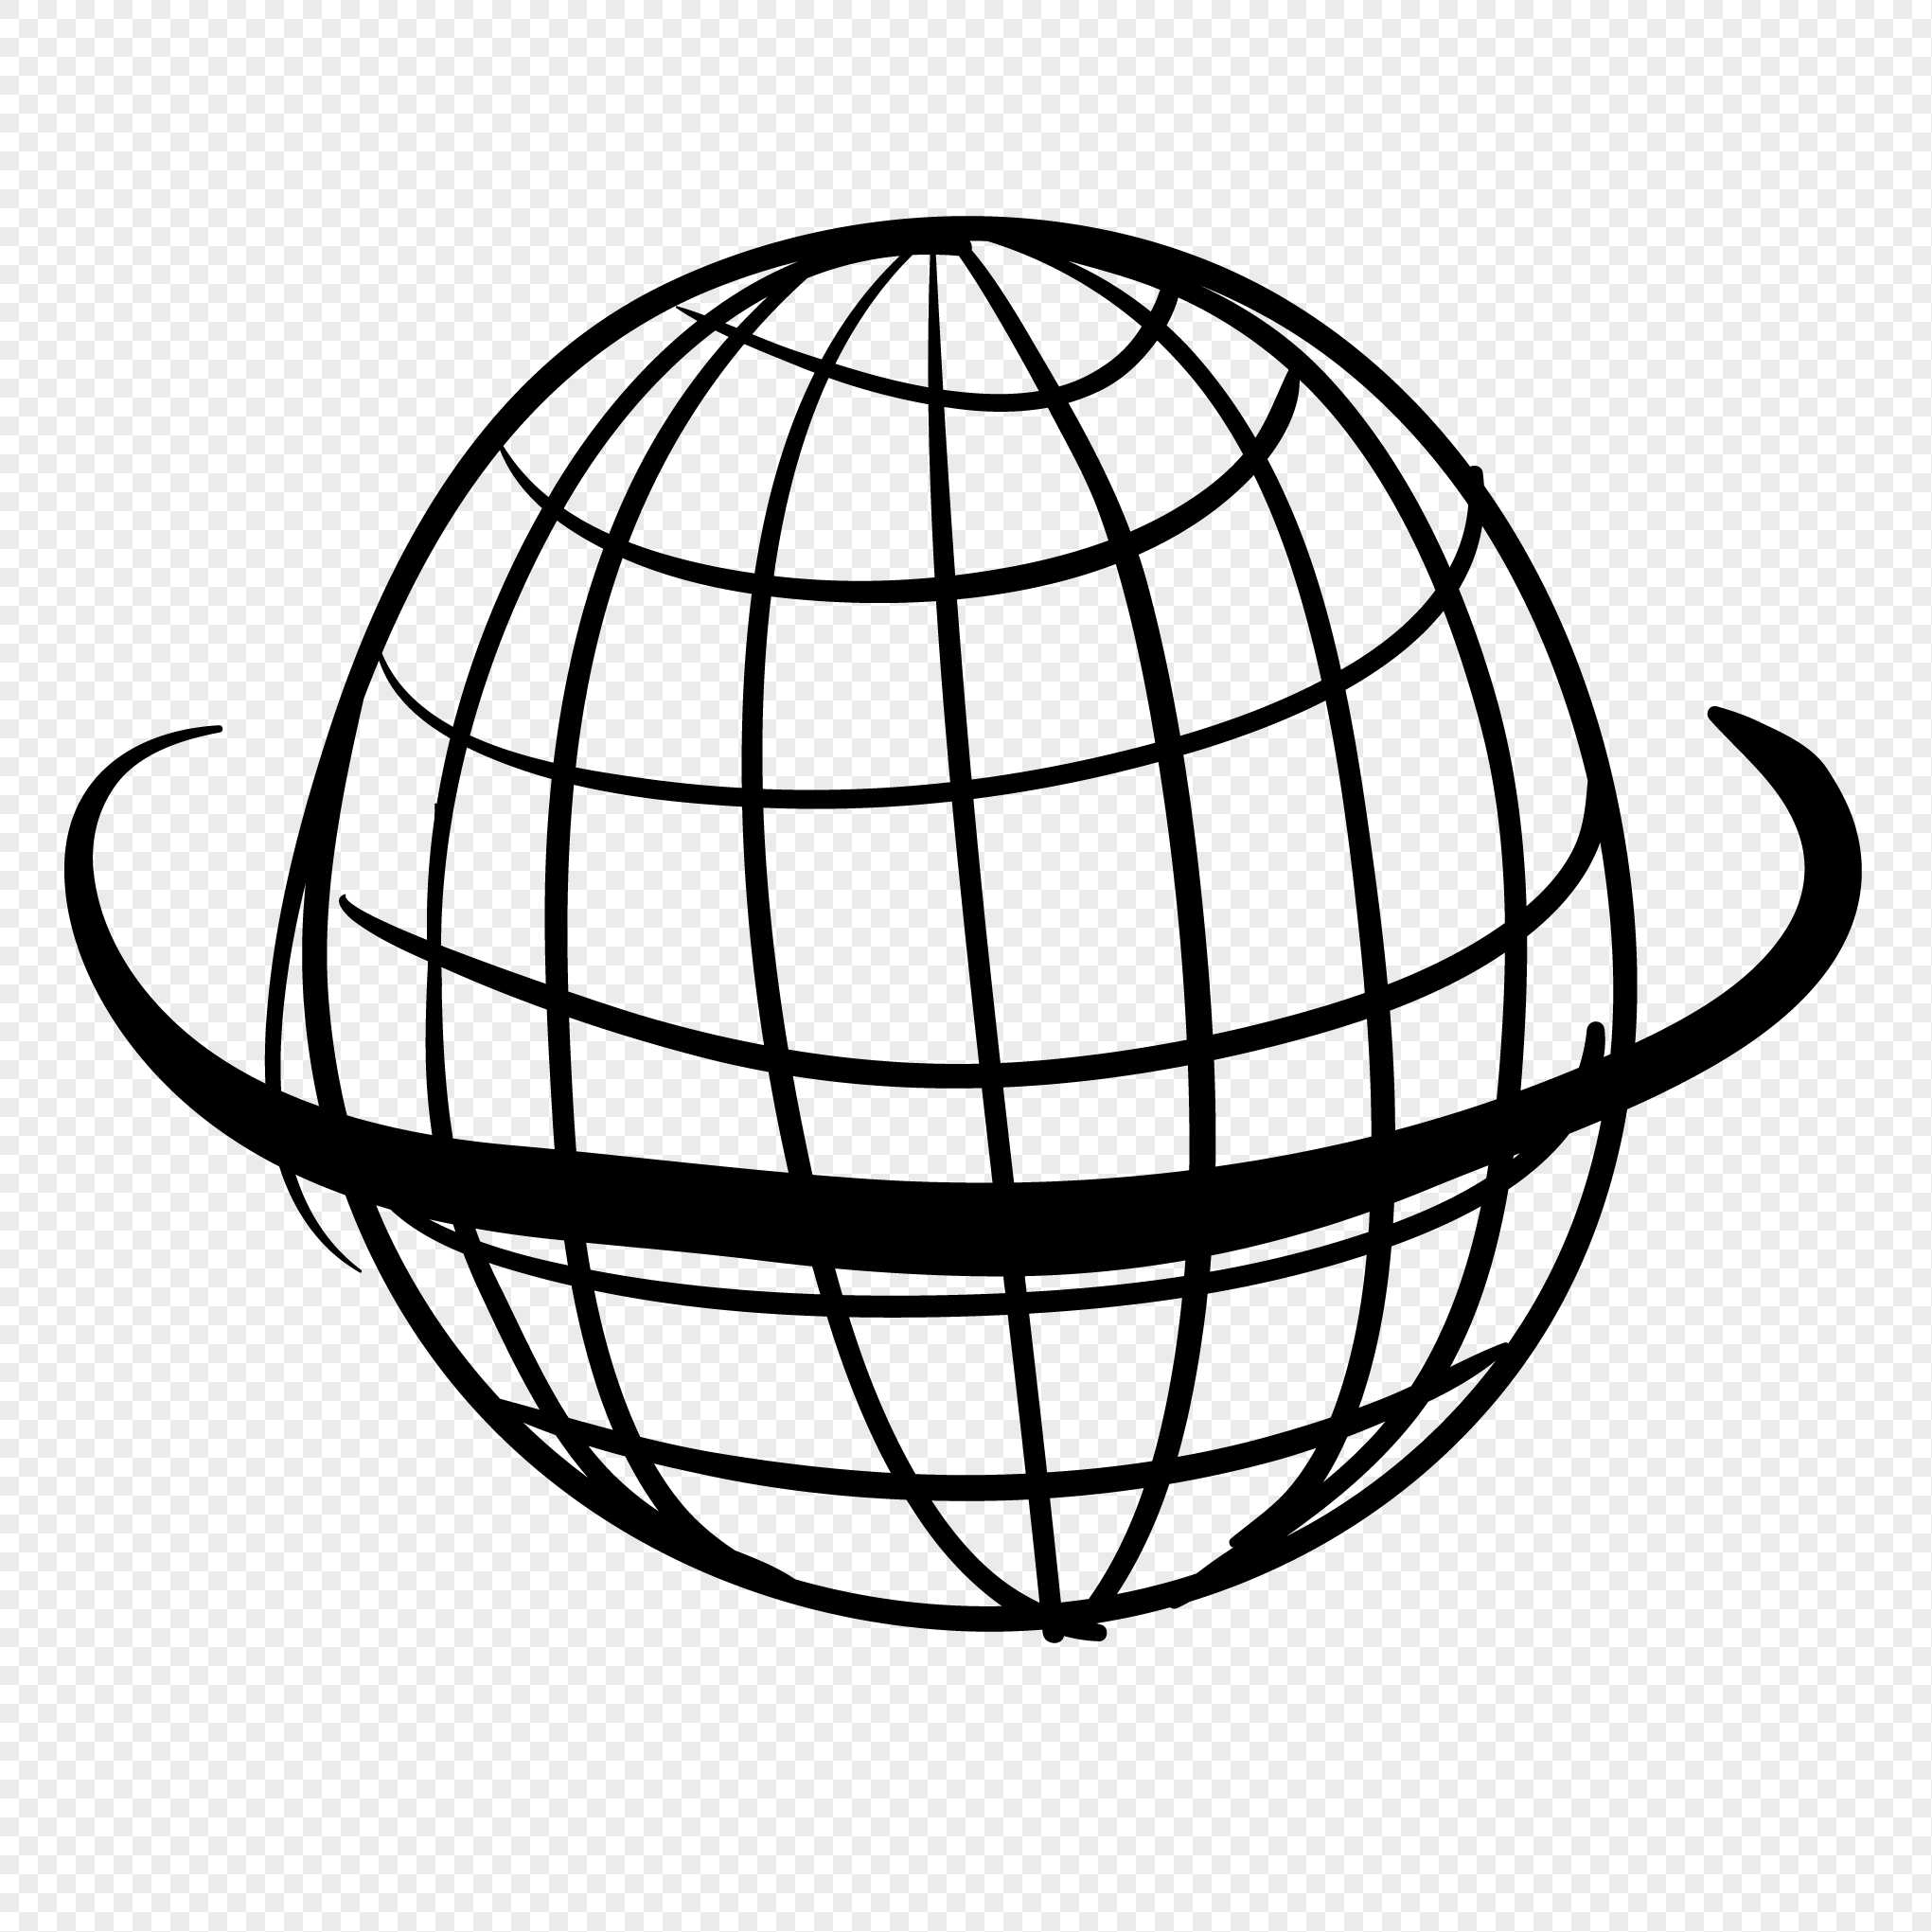 2041x2041 Hand Drawn Globe Vector Image Picture 400315594 Free